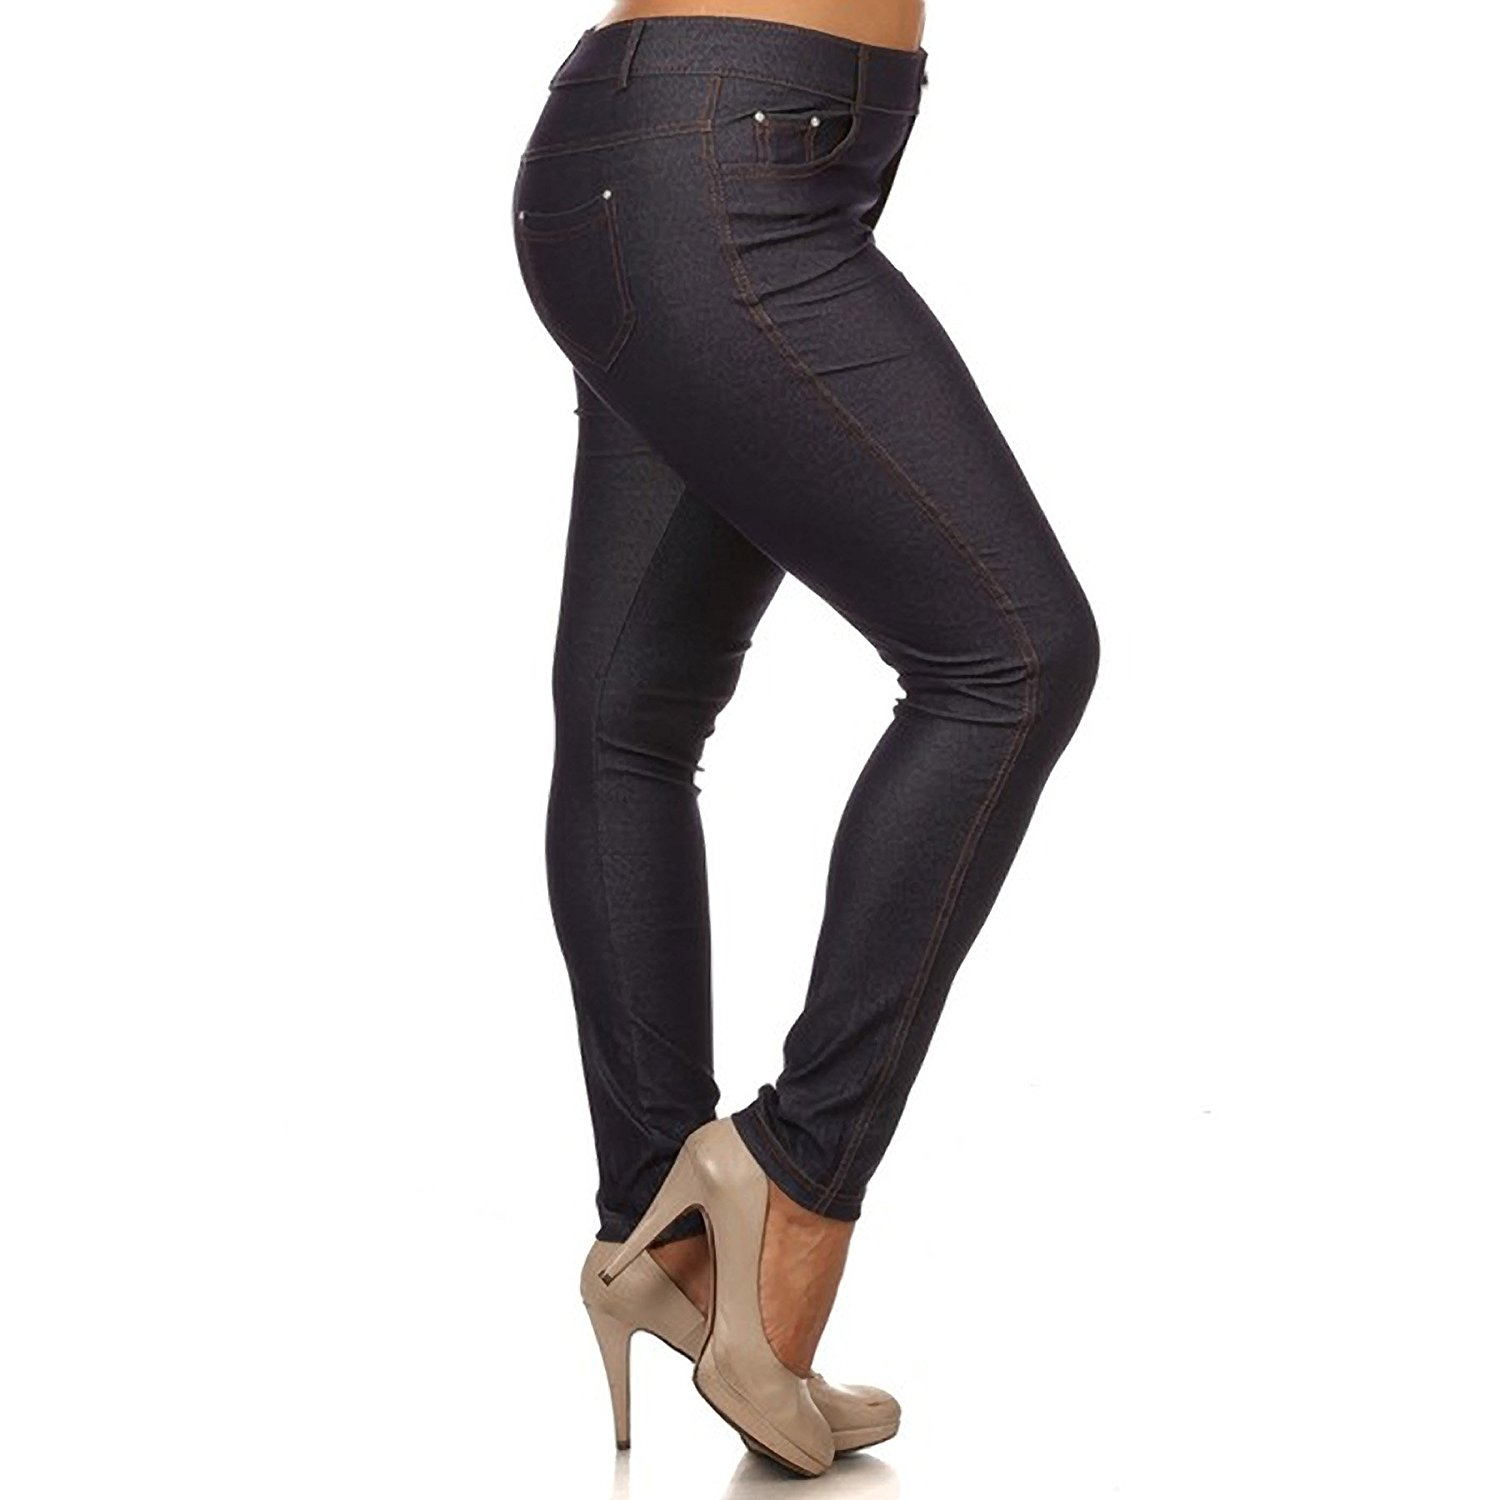 9f4a6a1b8cc Get Quotations · Basic 5 Pocket Colored Jeggings - Plus Size